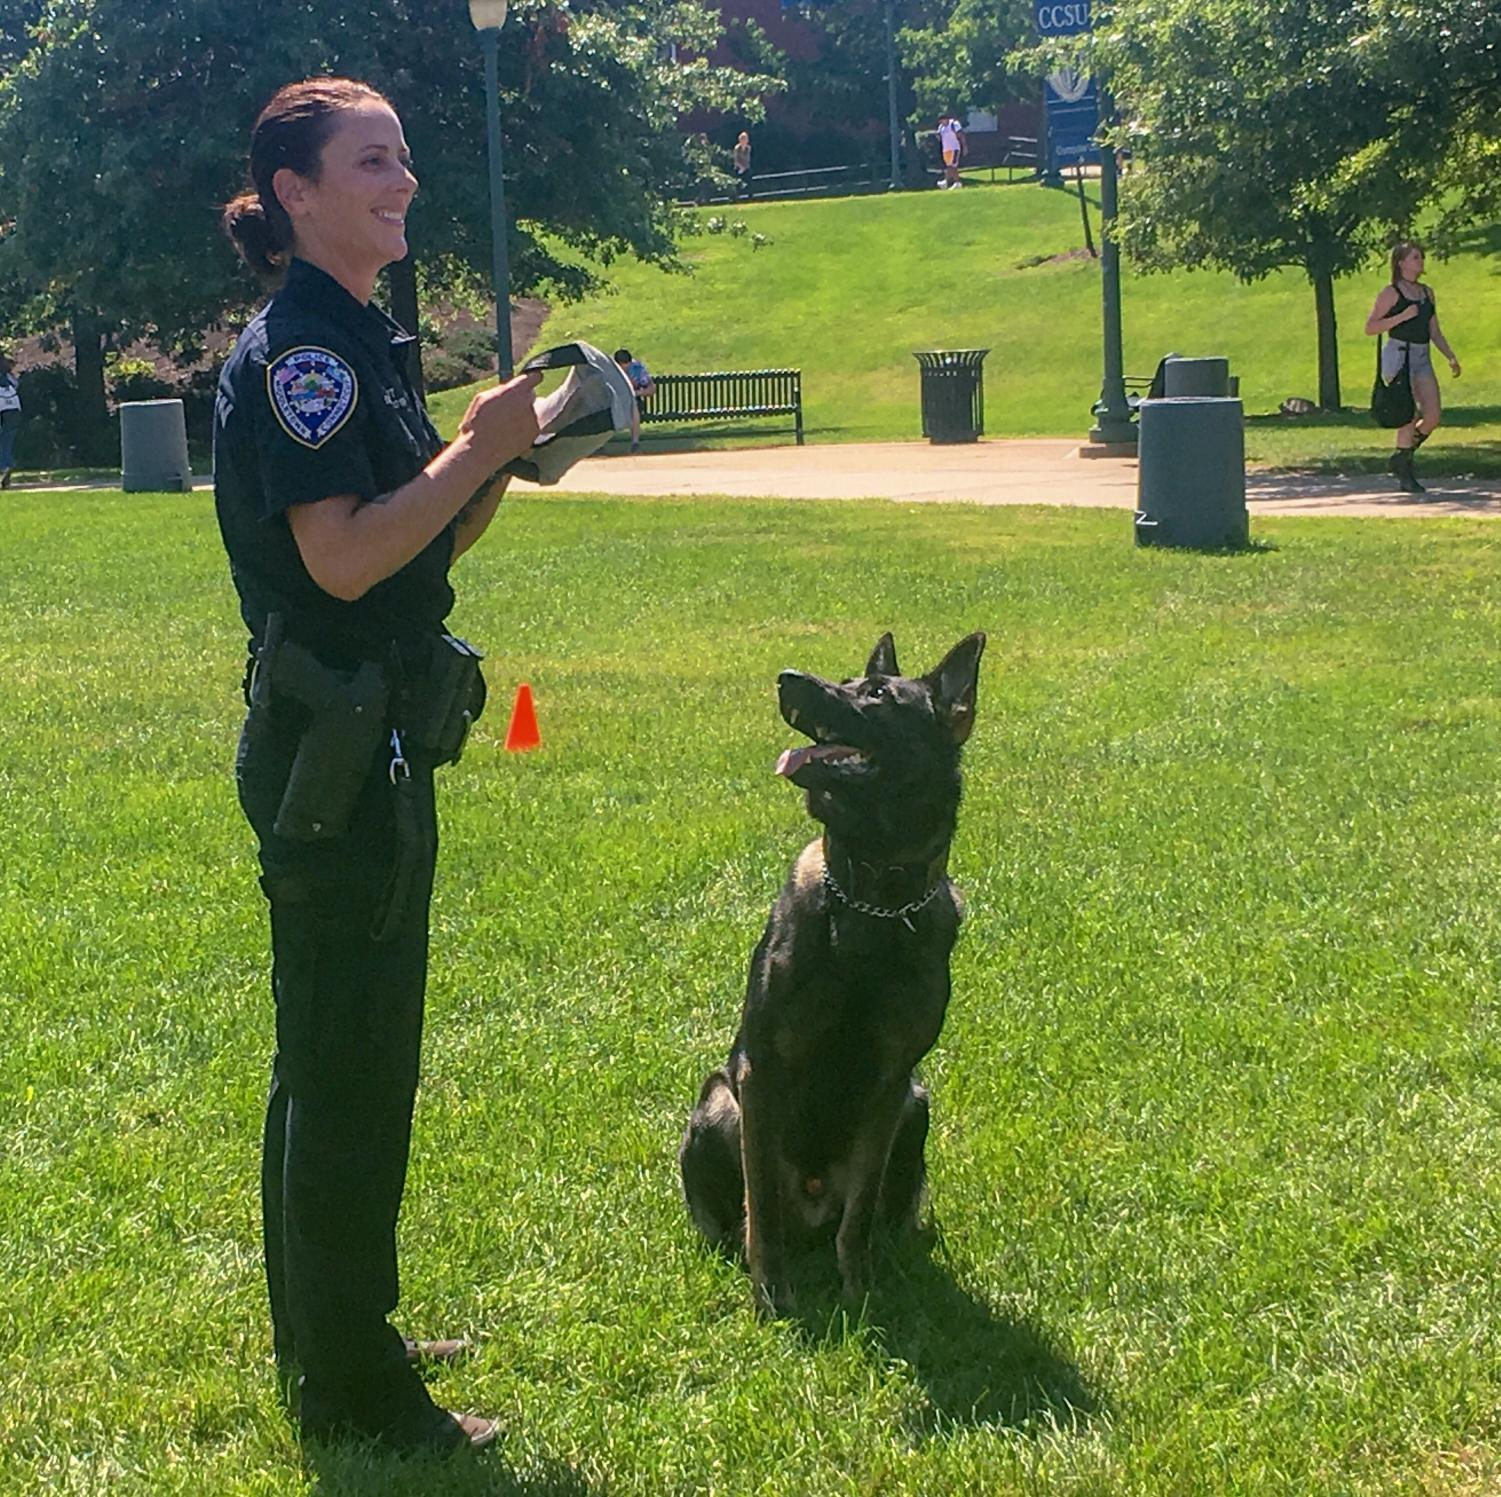 K-9+Diezel+and+his+human+partner+Middletown+Officer+Aura+Smith+came+to+CCSU+last+Tuesday+as+part+of+a+demonstration.